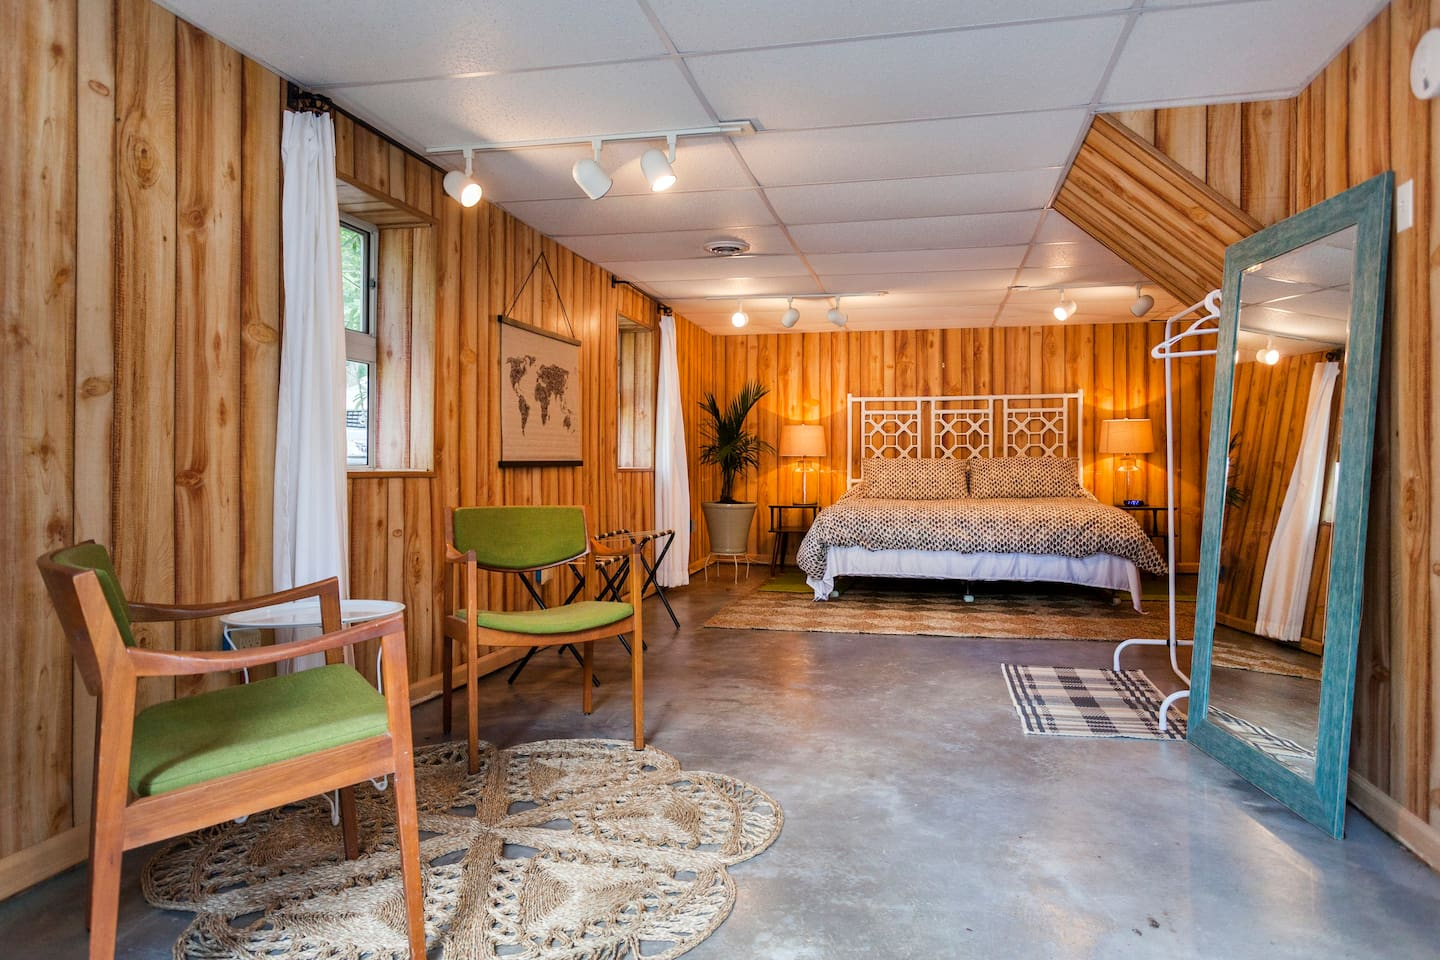 We've gone a little island and a little retro. The stained and sealed concrete is hip and clean, and rugs soften up the underfoot experience. The bed is king sized and we've been told by guests that its heavenly.